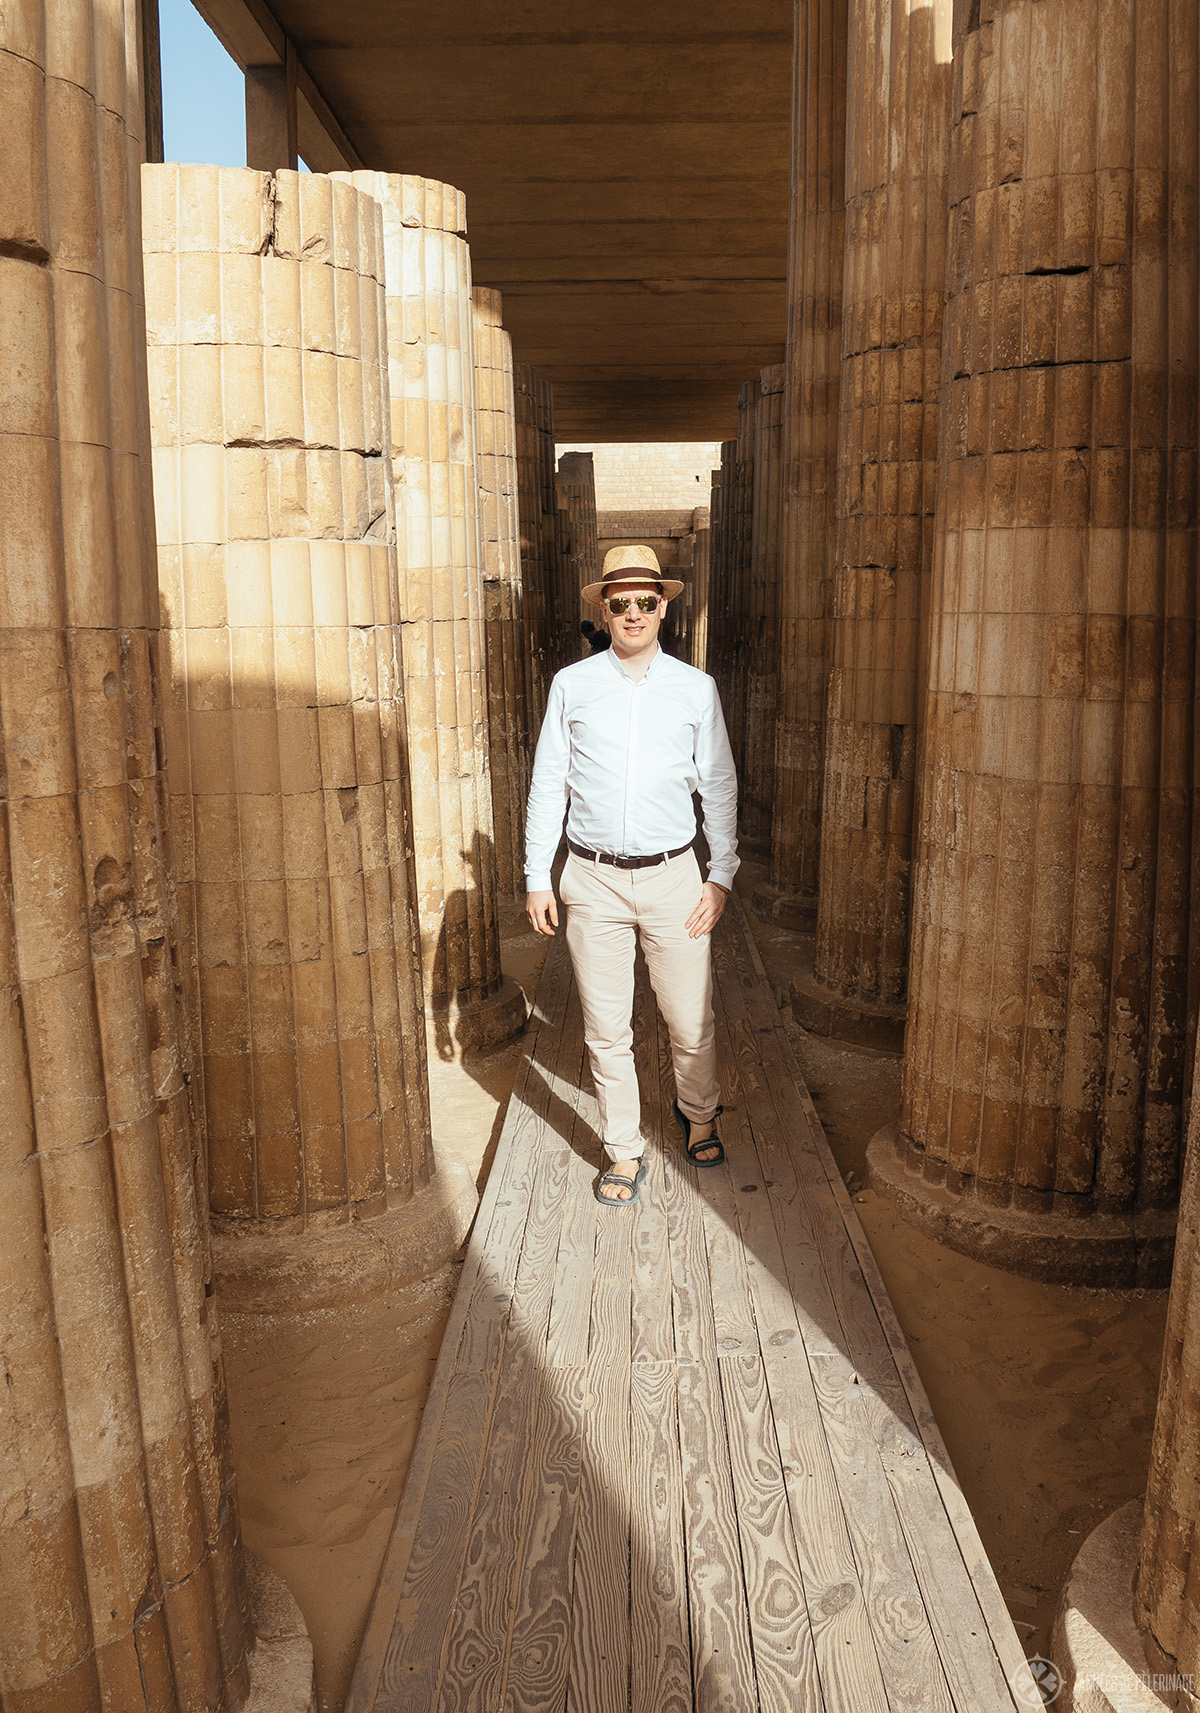 Walking through the colonnade inside Djoser's pyramid complex